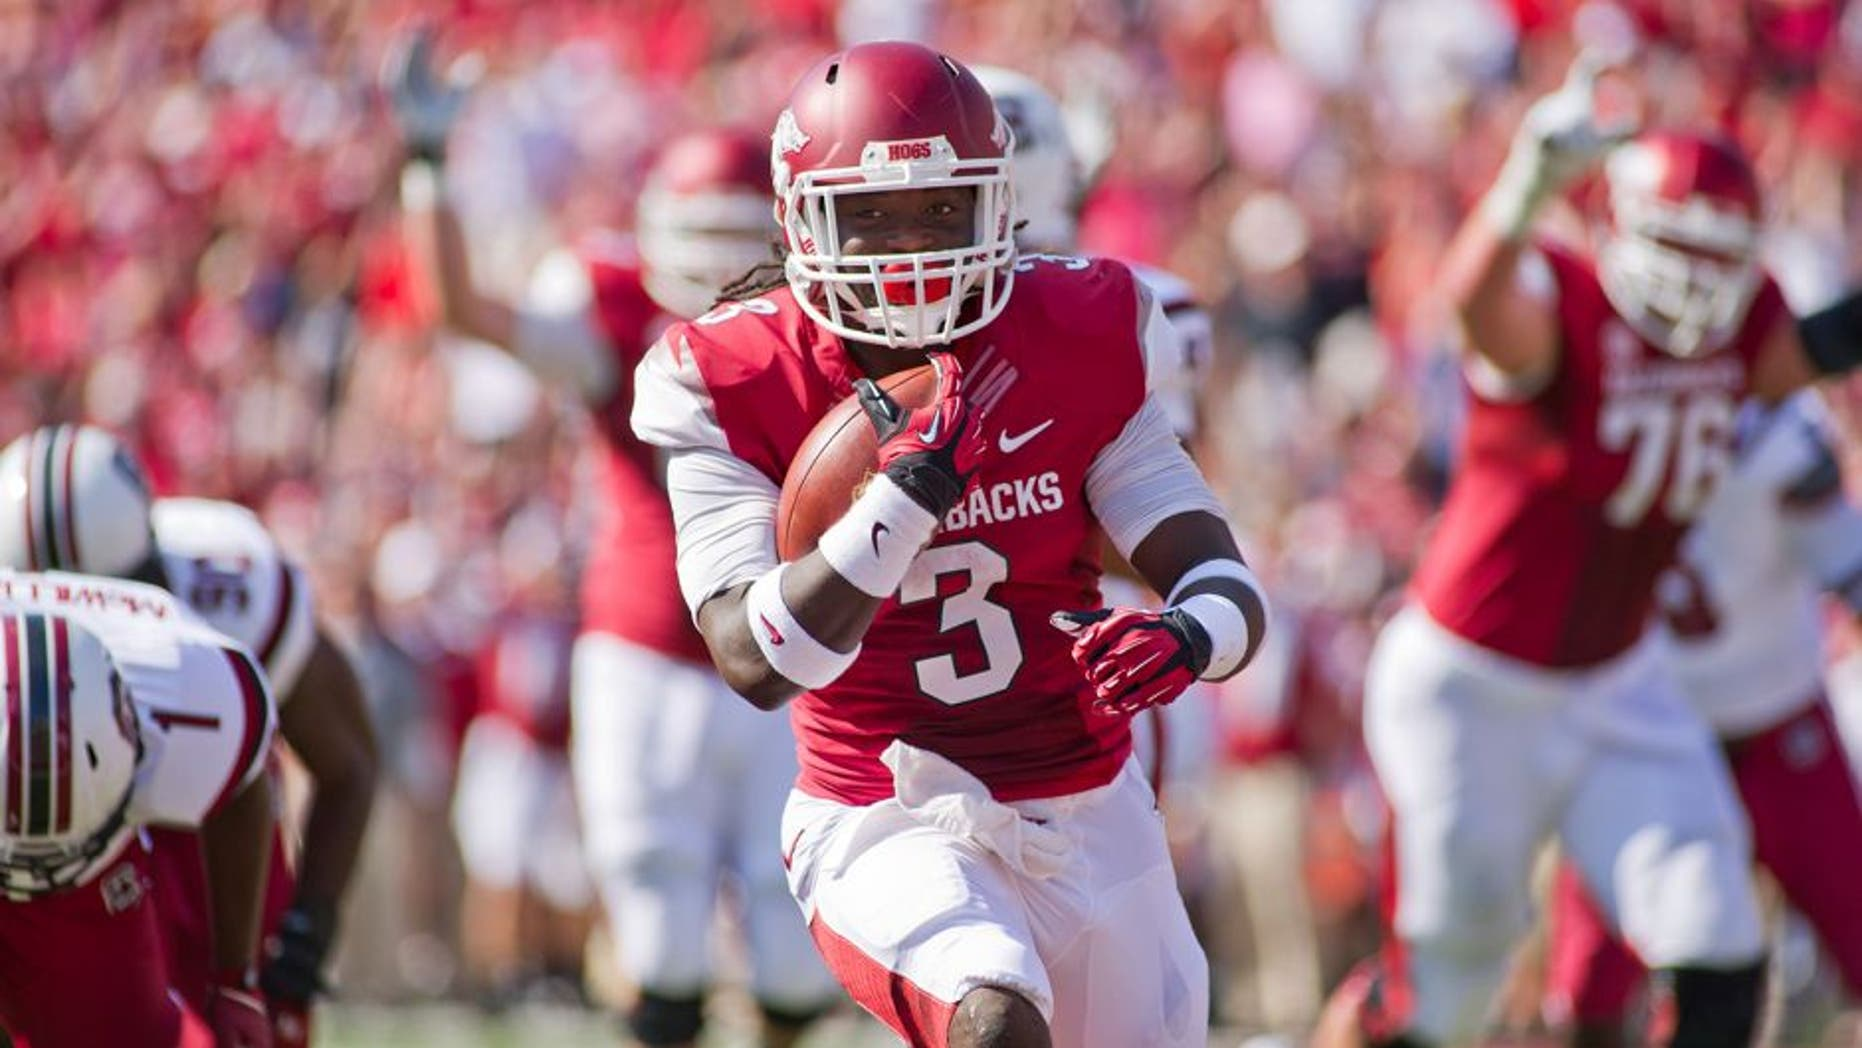 Oct 12, 2013; Fayetteville, AR, USA; Arkansas Razorbacks running back Alex Collins (3) runs with the ball during a game against the South Carolina Gamecocks at Donald W. Reynolds Razorback Stadium. South Carolina defeated Arkansas 52-7. Mandatory Credit: Beth Hall-USA TODAY Sports